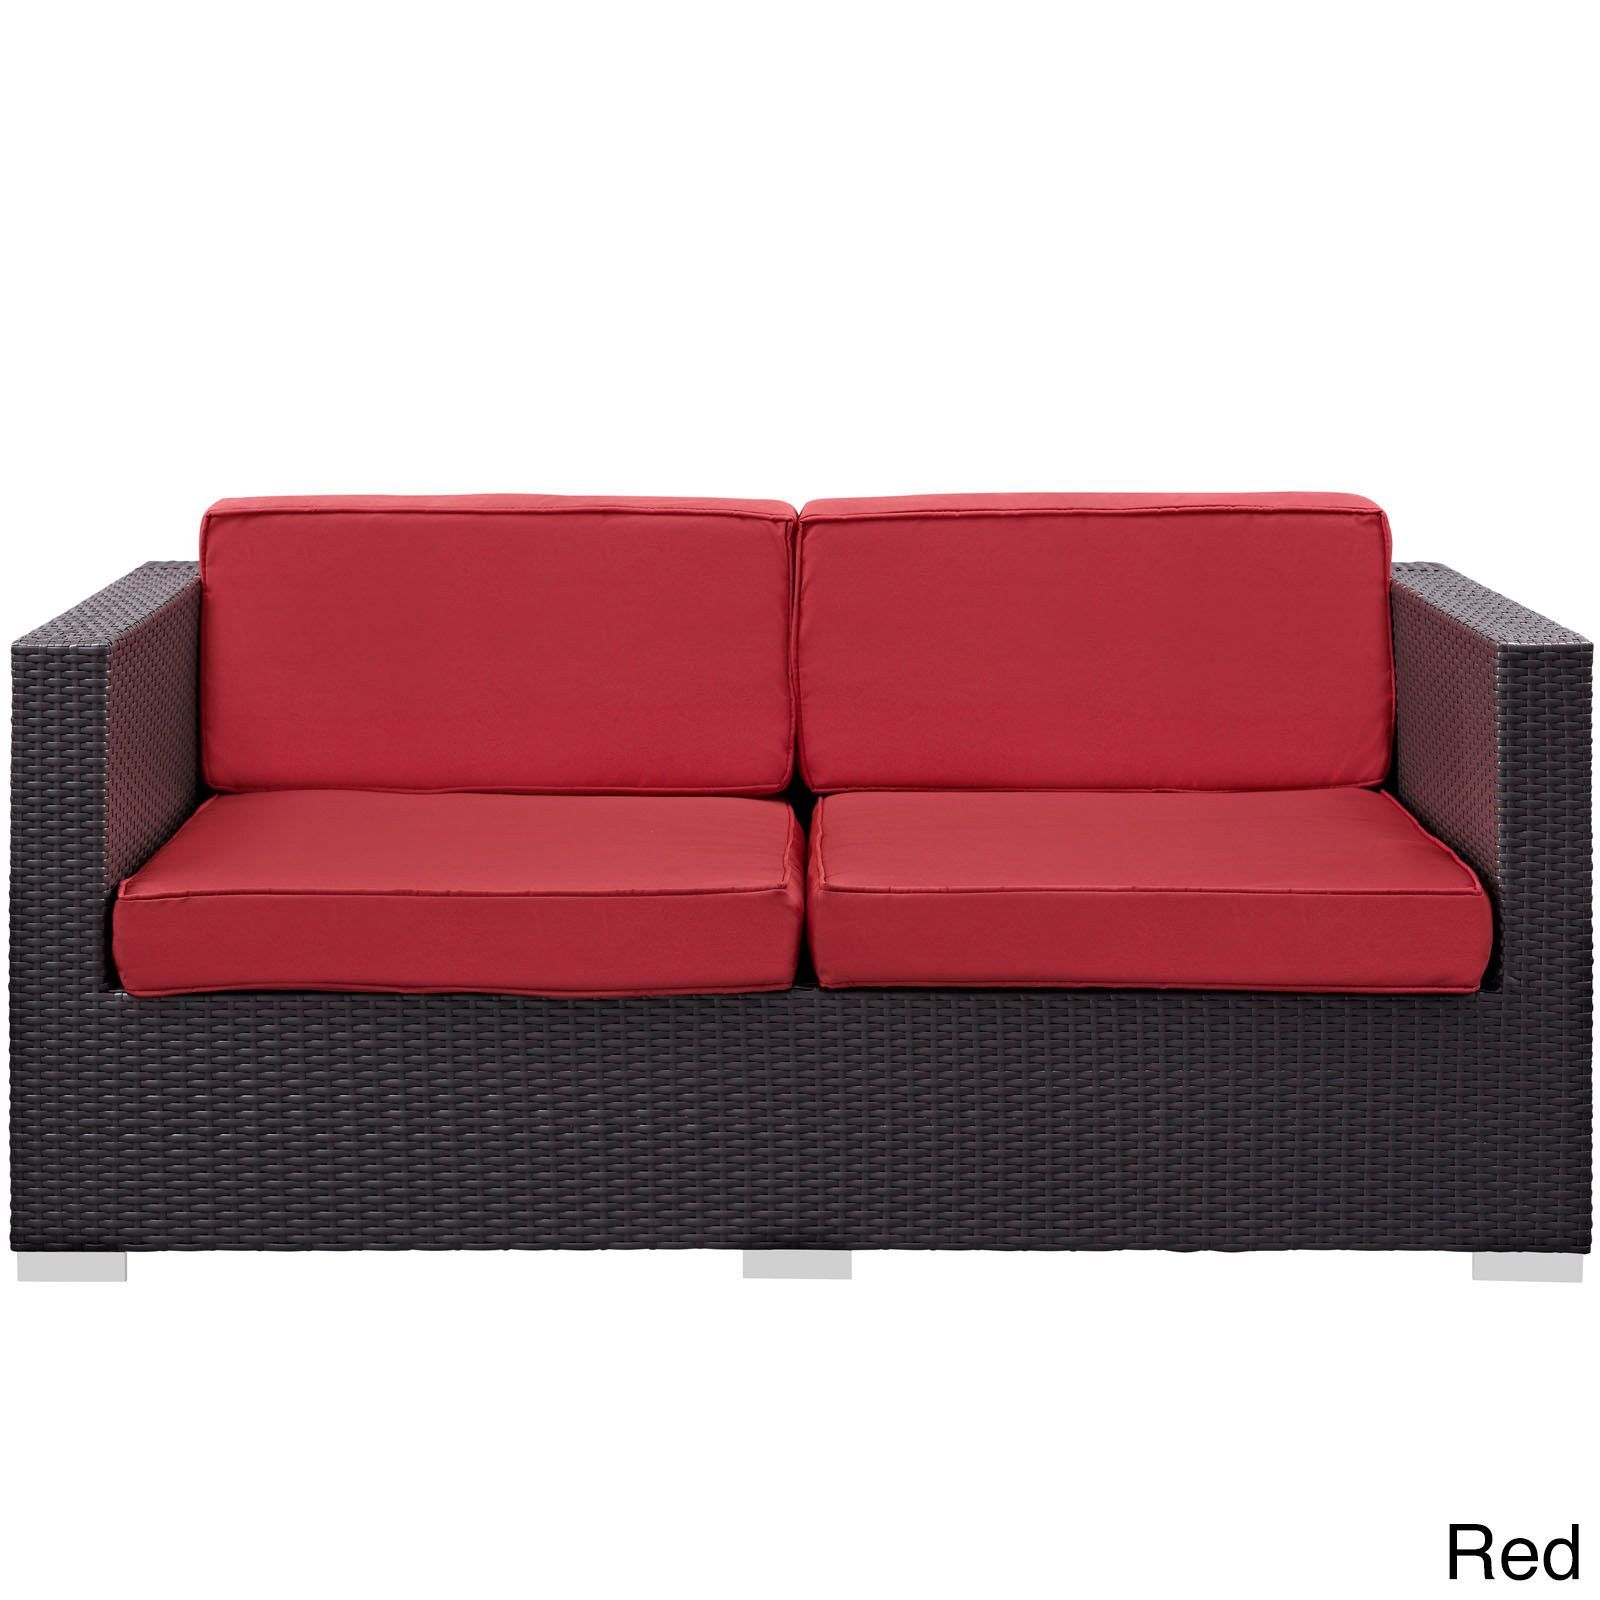 Modway 'Gather' Outdoor Patio Loveseat (Espresso Red), Size 3-Piece Sets, Patio Furniture (Aluminum)